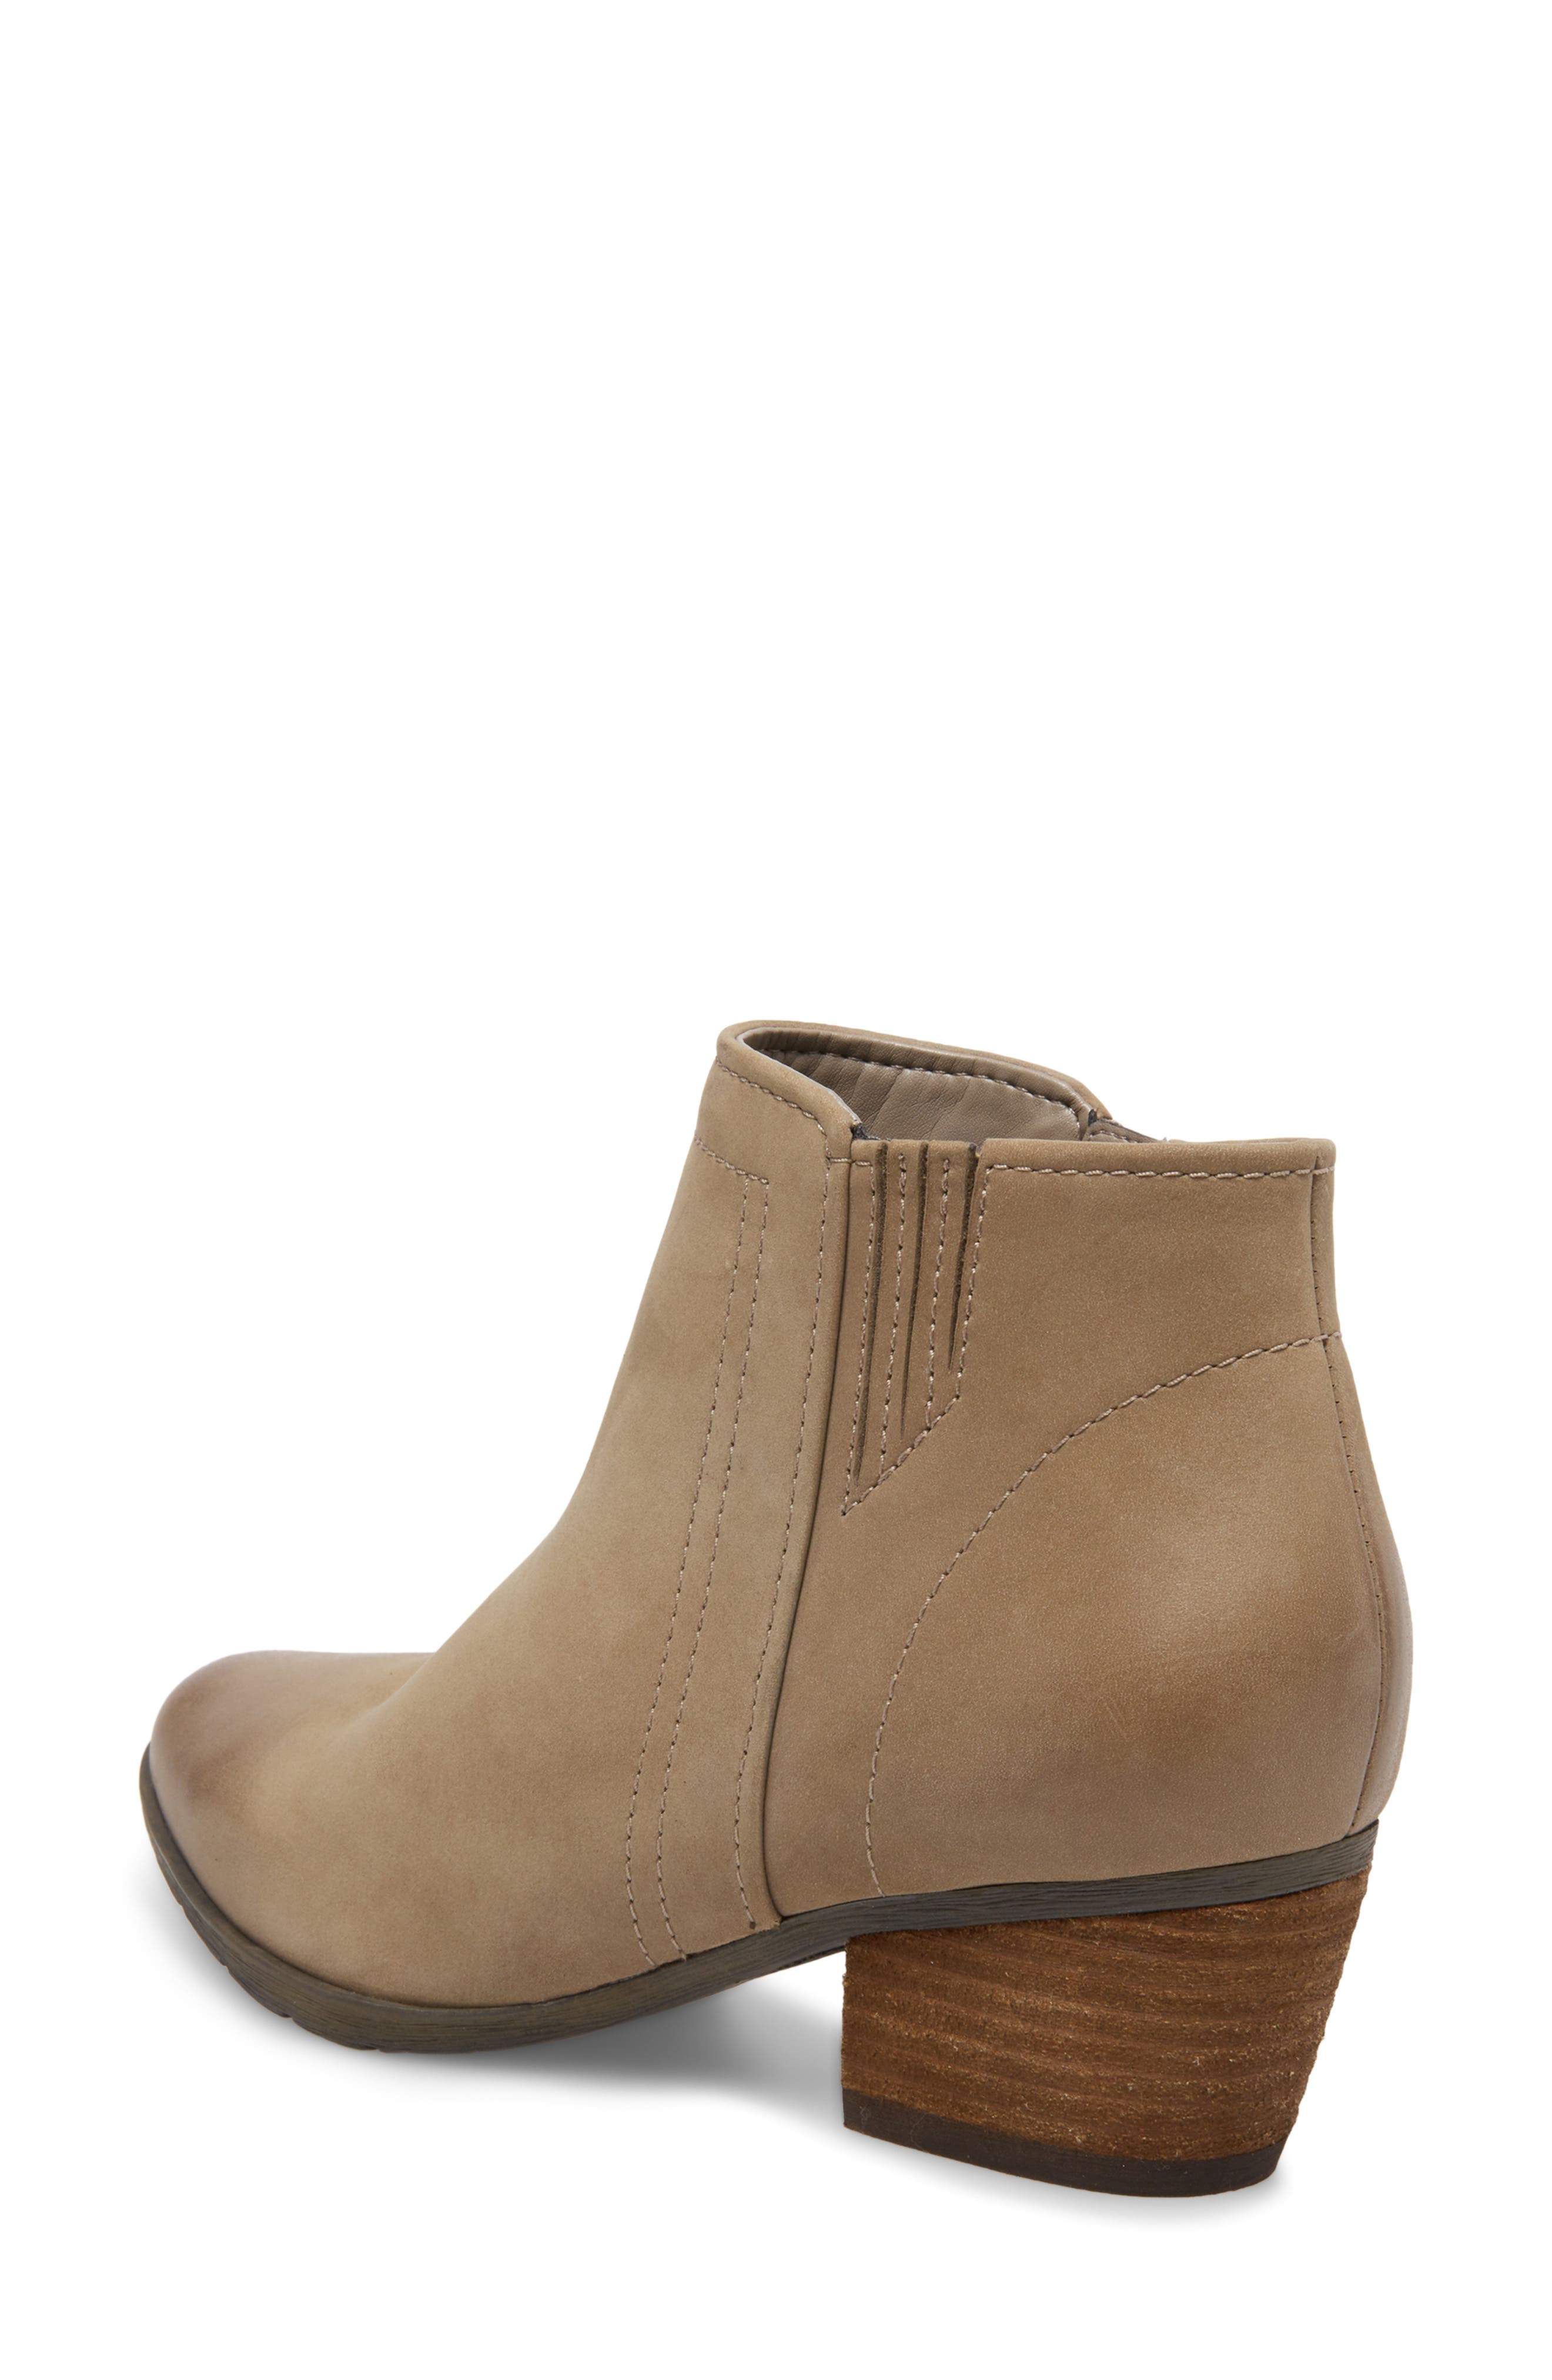 'Valli' Waterproof  Bootie,                             Alternate thumbnail 2, color,                             MUSHROOM NUBUCK